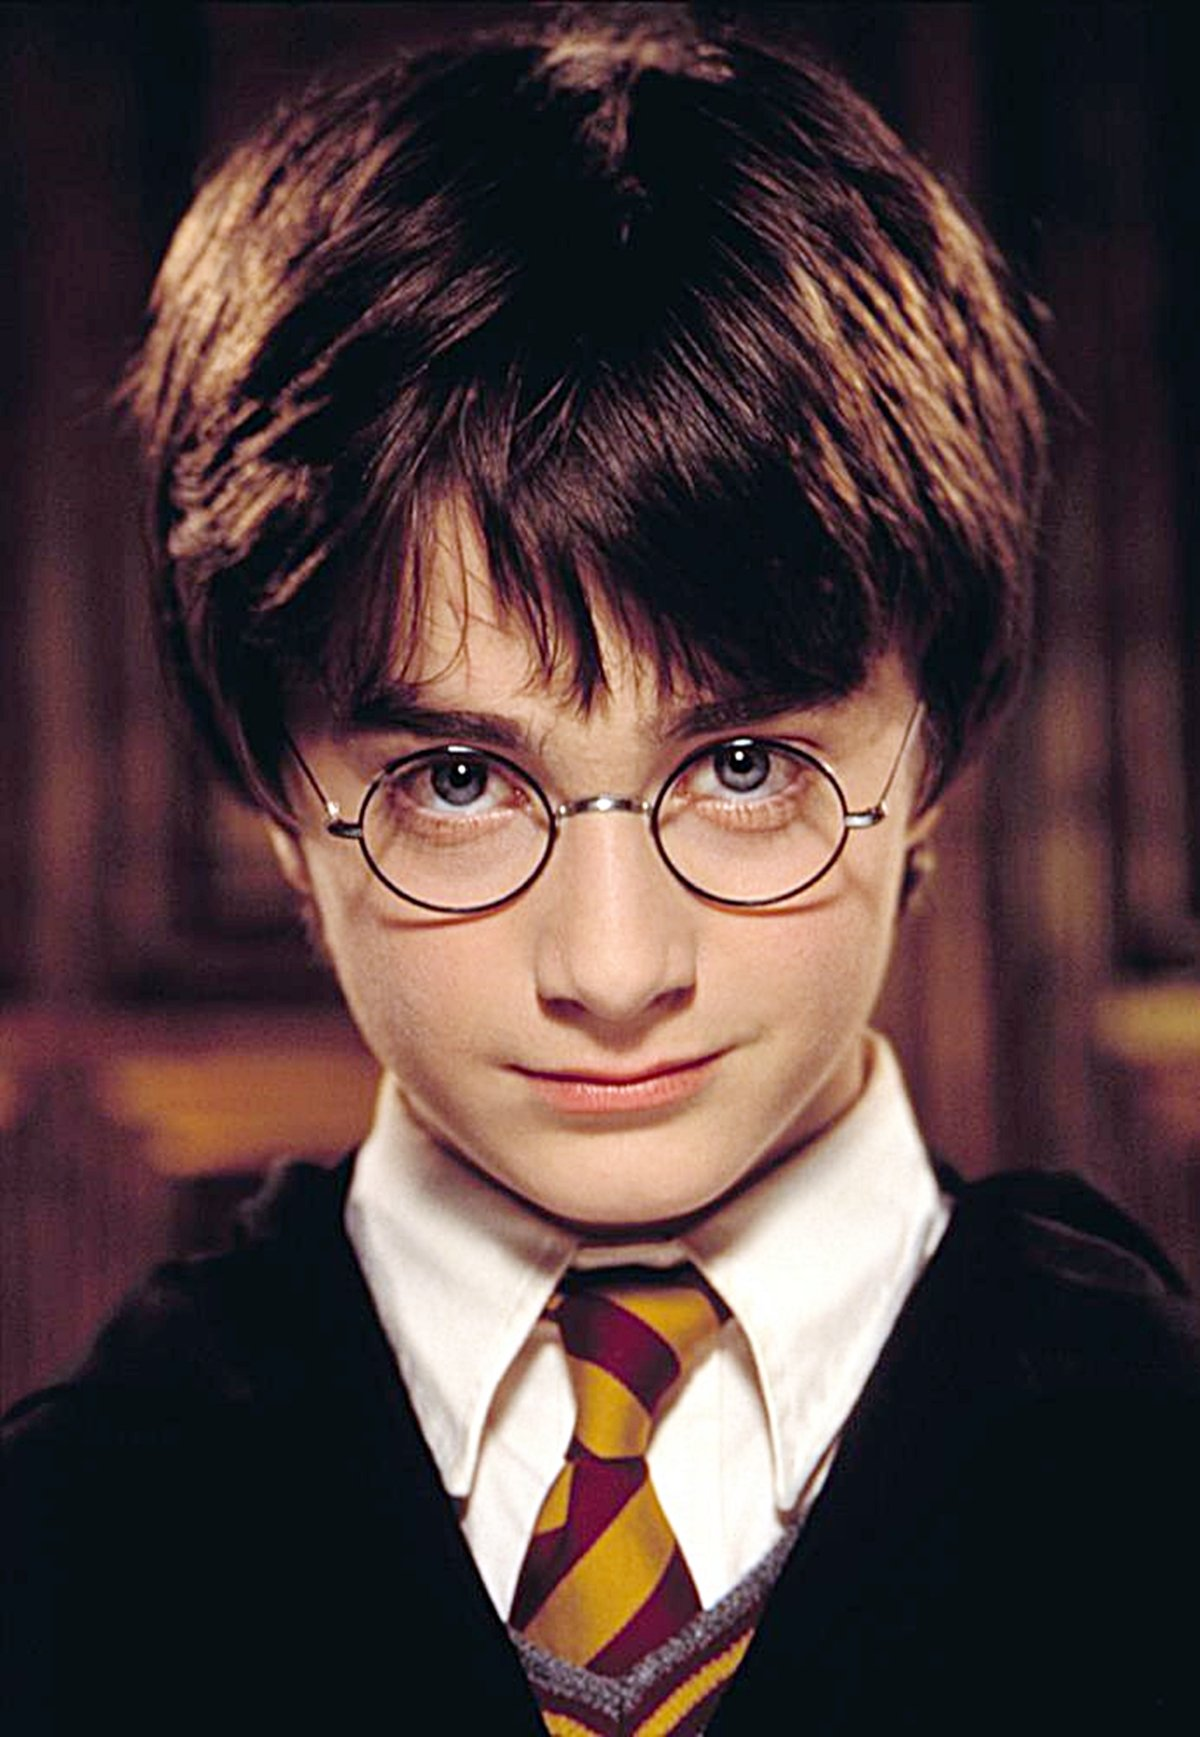 3 41 Are Your Harry Potter Books Worth A Lot Of Money? Here's How To Find Out!